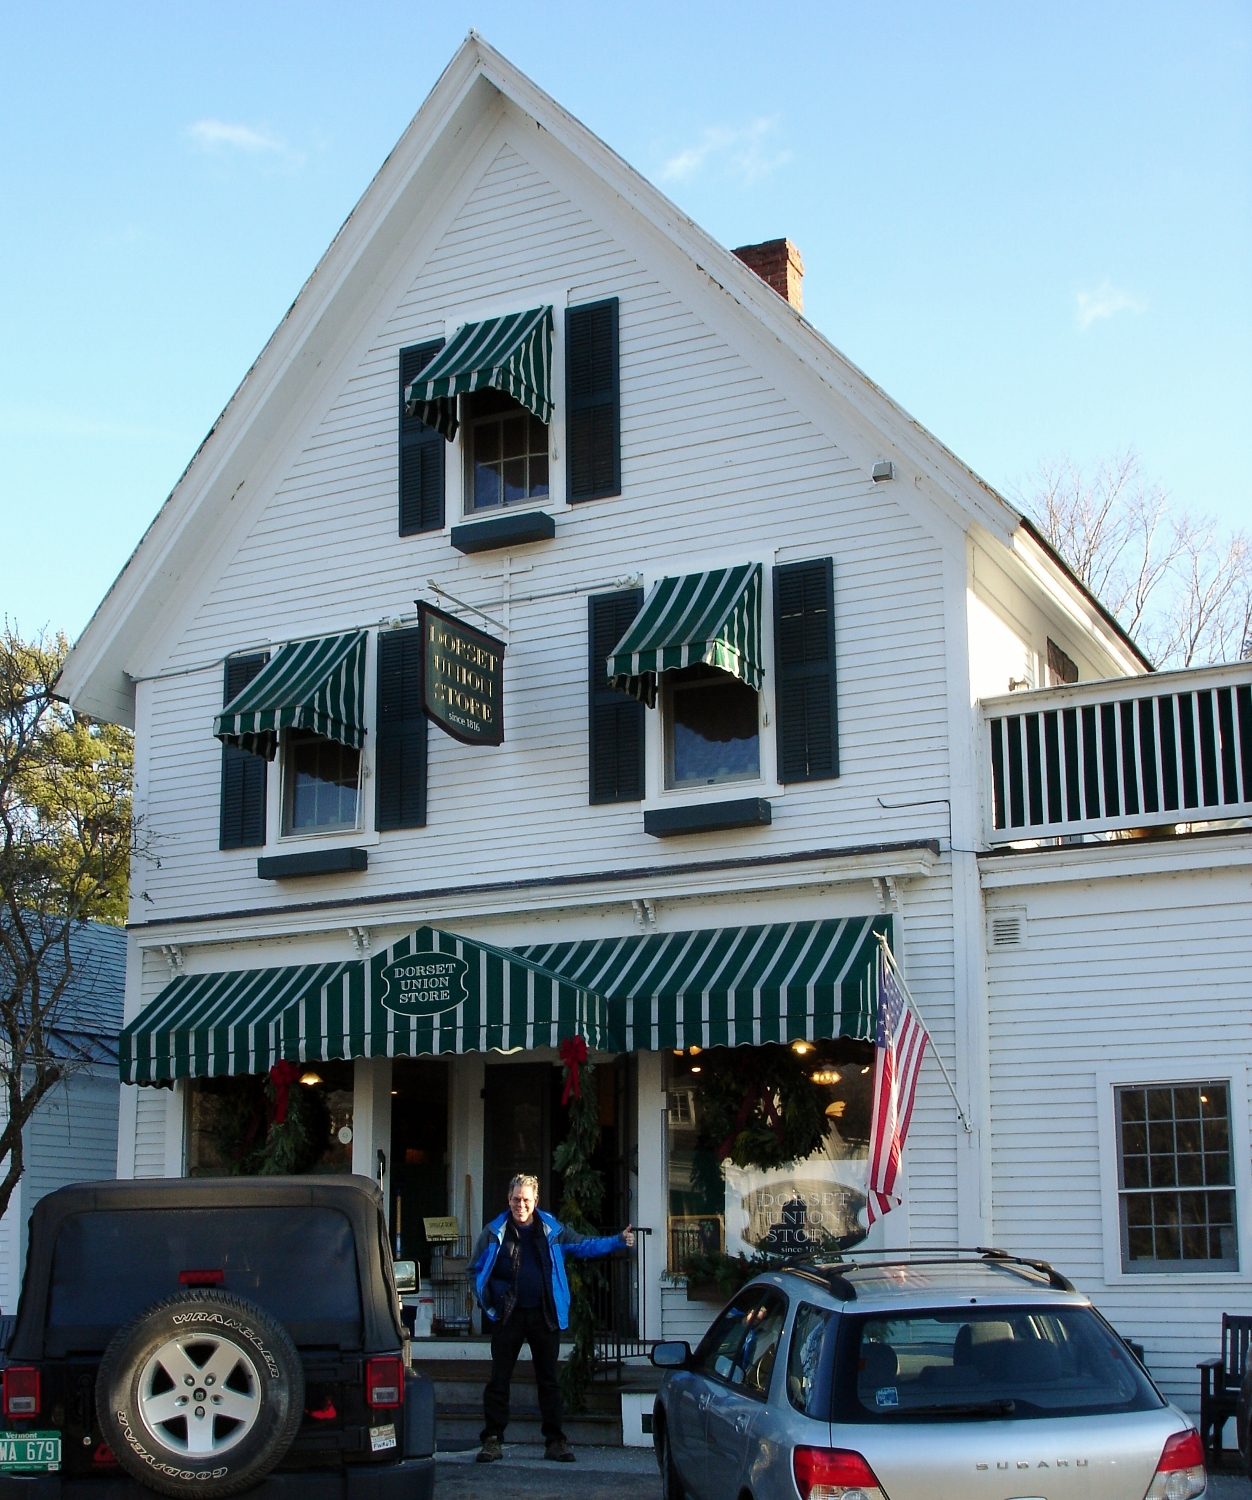 The Dorset Union Store sits across the street from The Dorset Inn, on the picture-perfect town green.